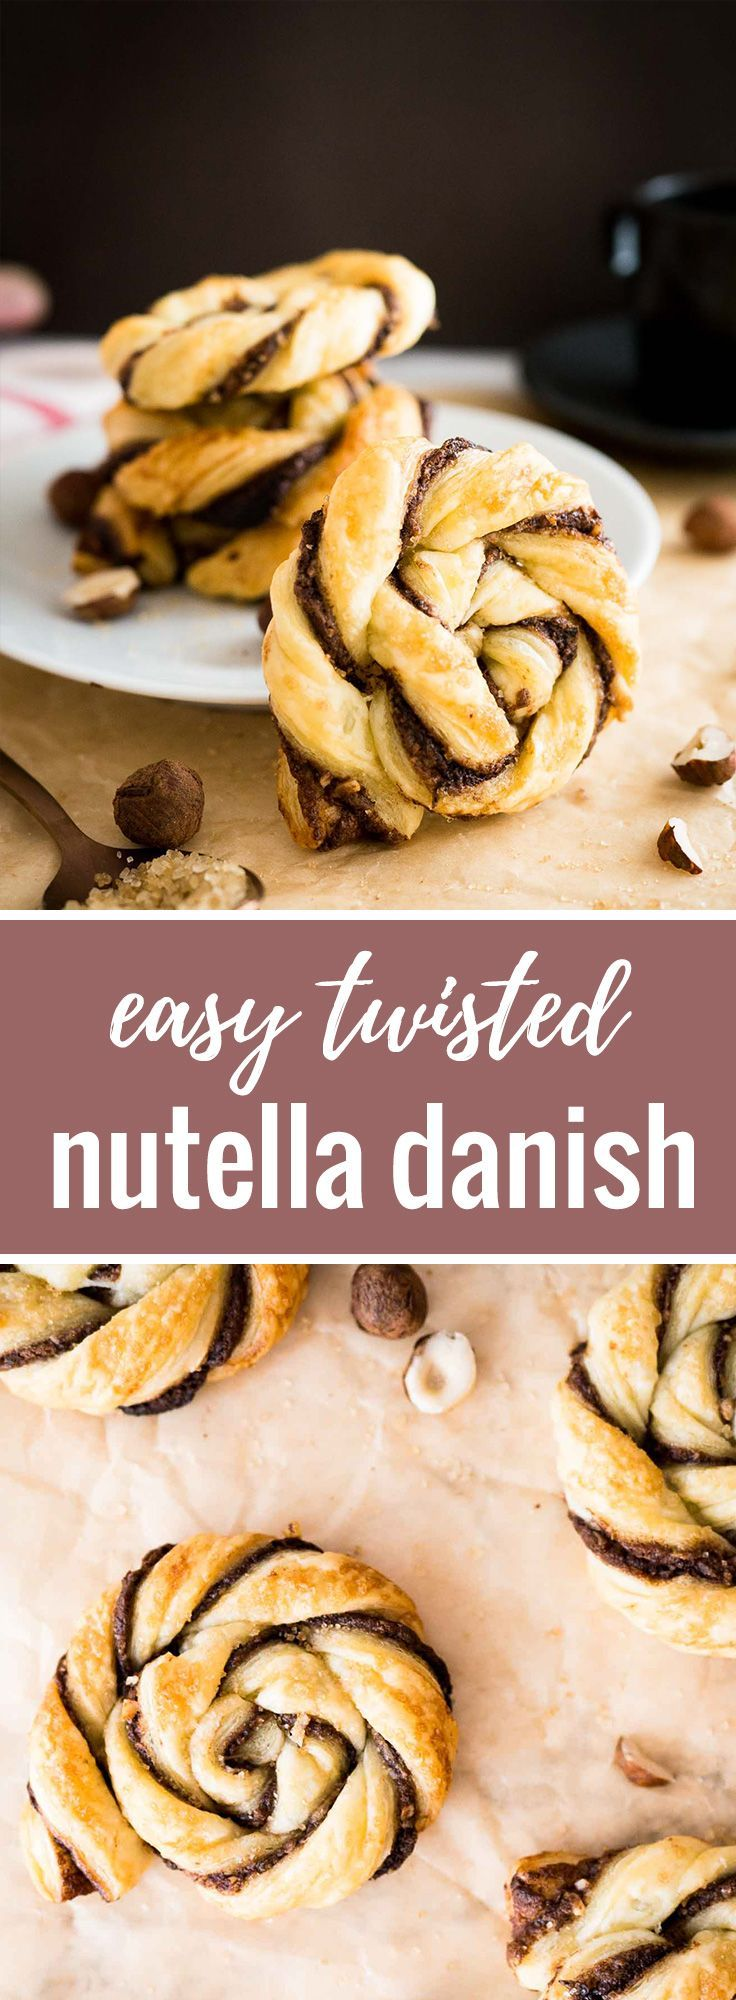 I can't wait to try these Easy Twisted Nutella Danishes! They look soooo good.